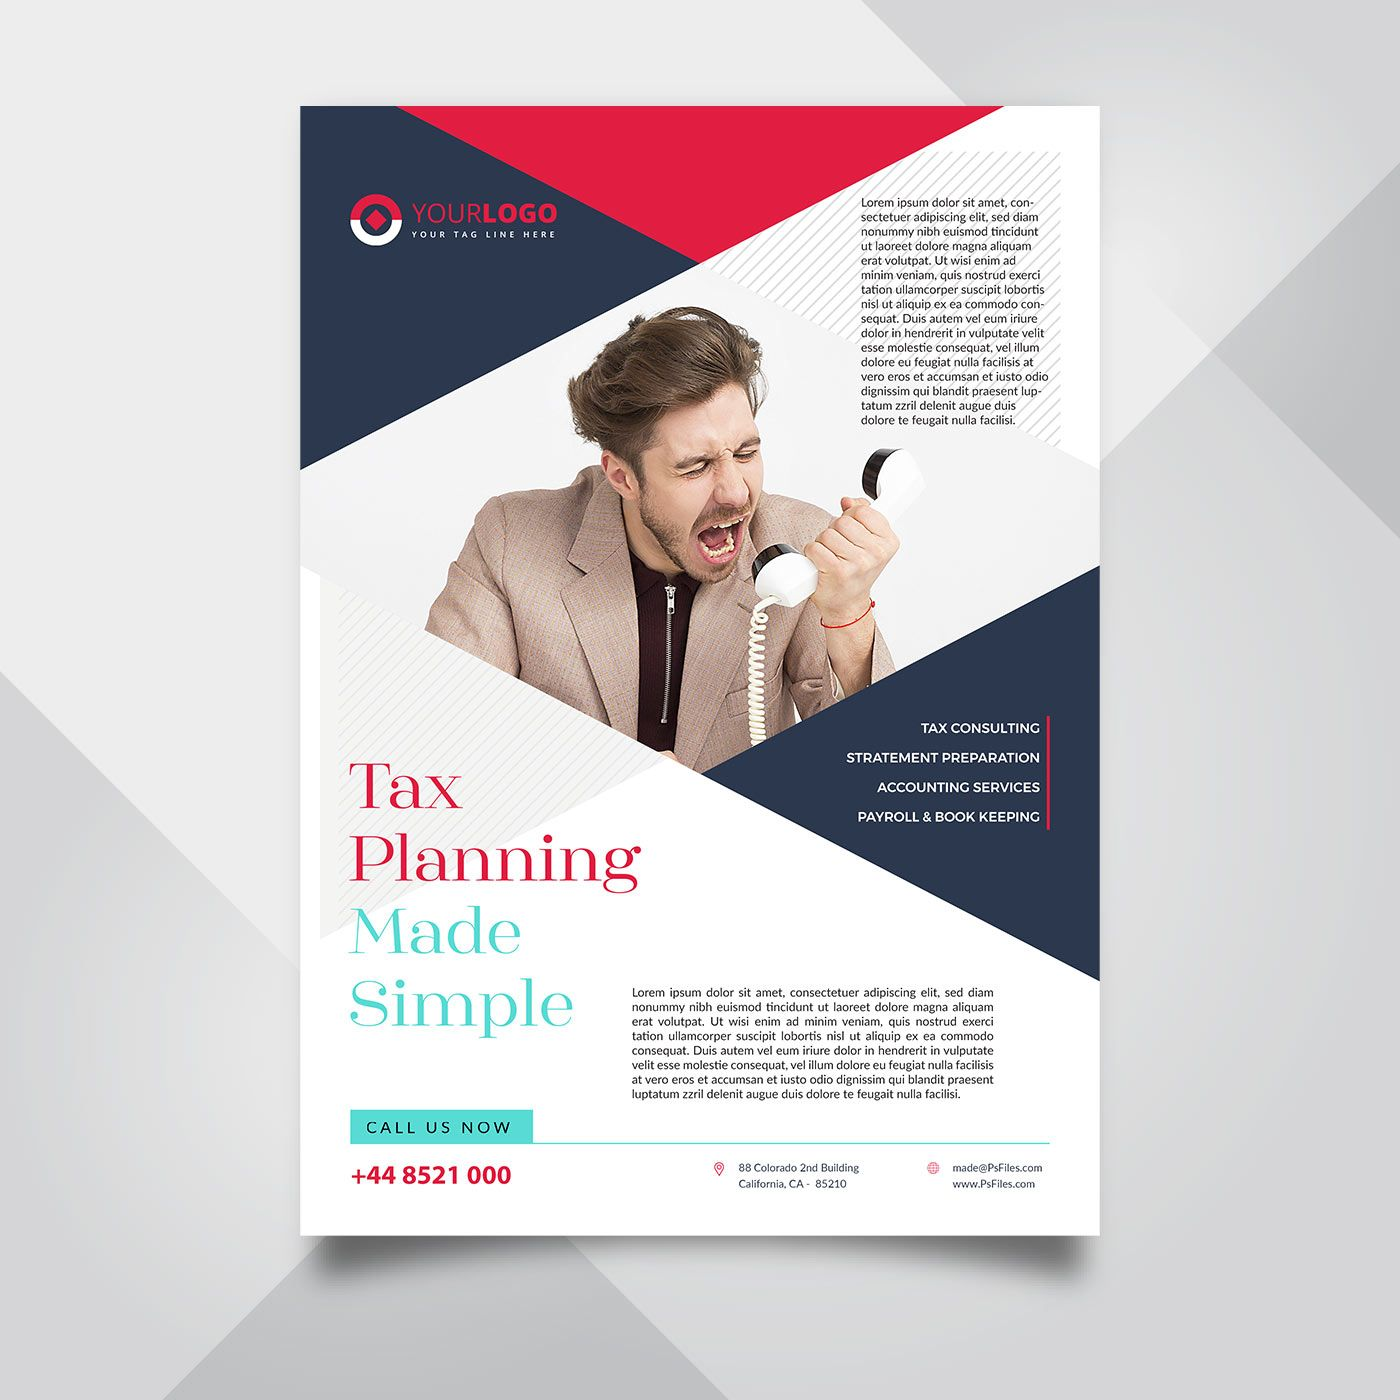 Tax Service Flyer Template In Psd Free Psd Flyer Templates Psd Flyer Templates Free Psd Flyer